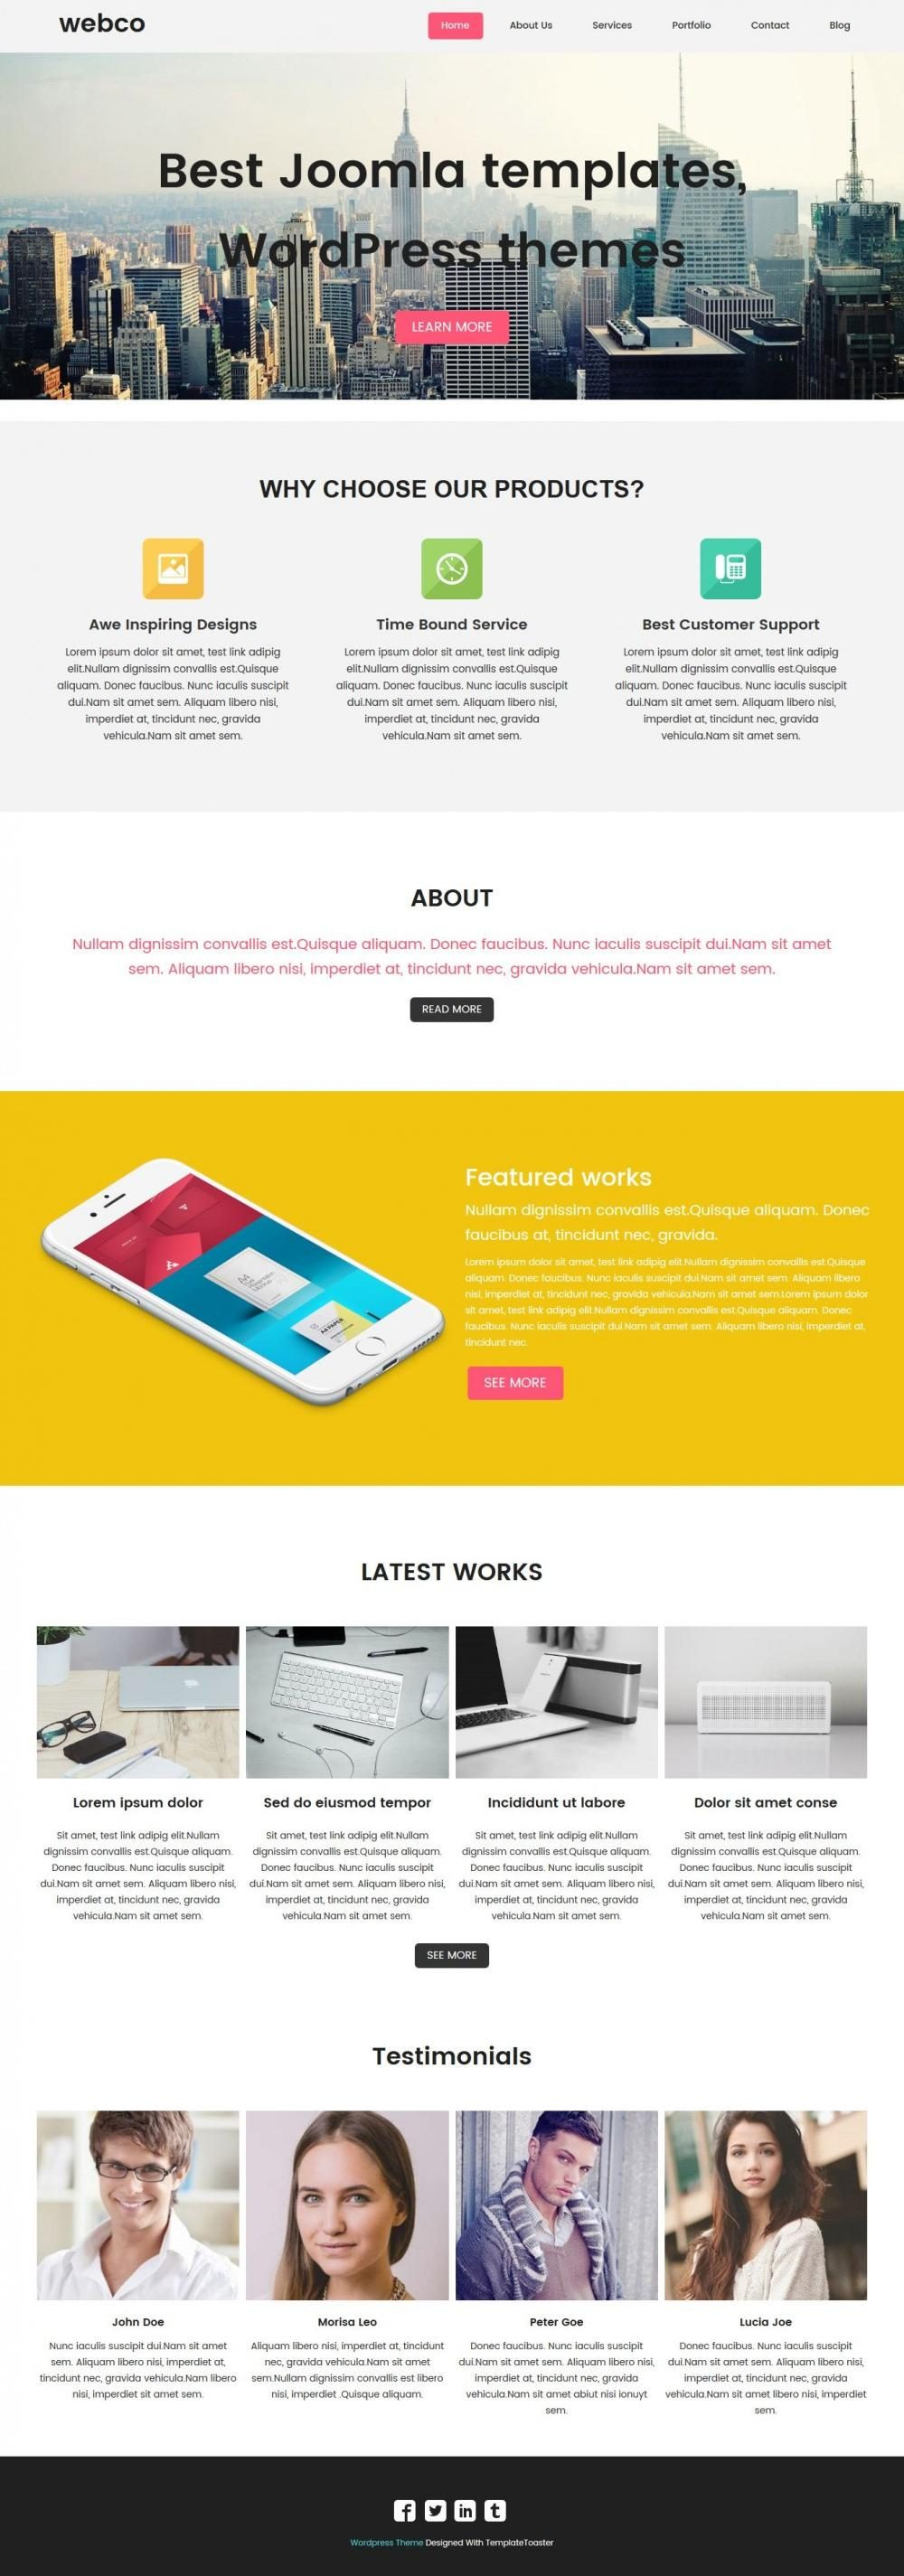 Webco Web Design Agencies Drupal Theme